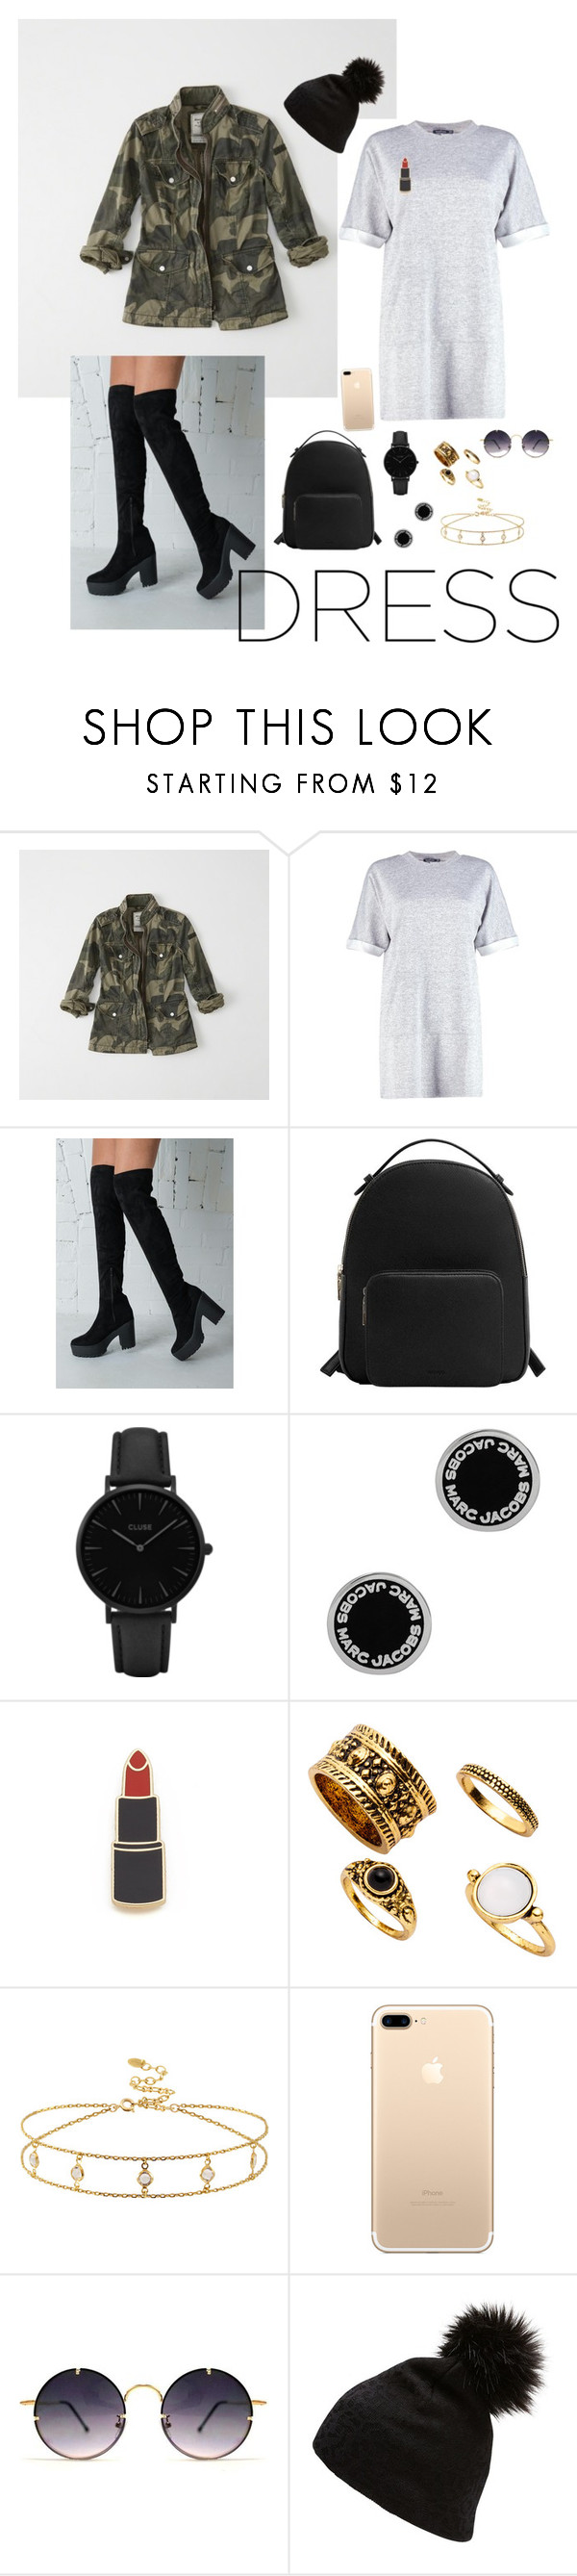 """""""Sans titre #941"""" by manon-rnd ❤ liked on Polyvore featuring Abercrombie & Fitch, Boohoo, MANGO, CLUSE, Marc Jacobs, Georgia Perry, Spitfire and Witchery"""